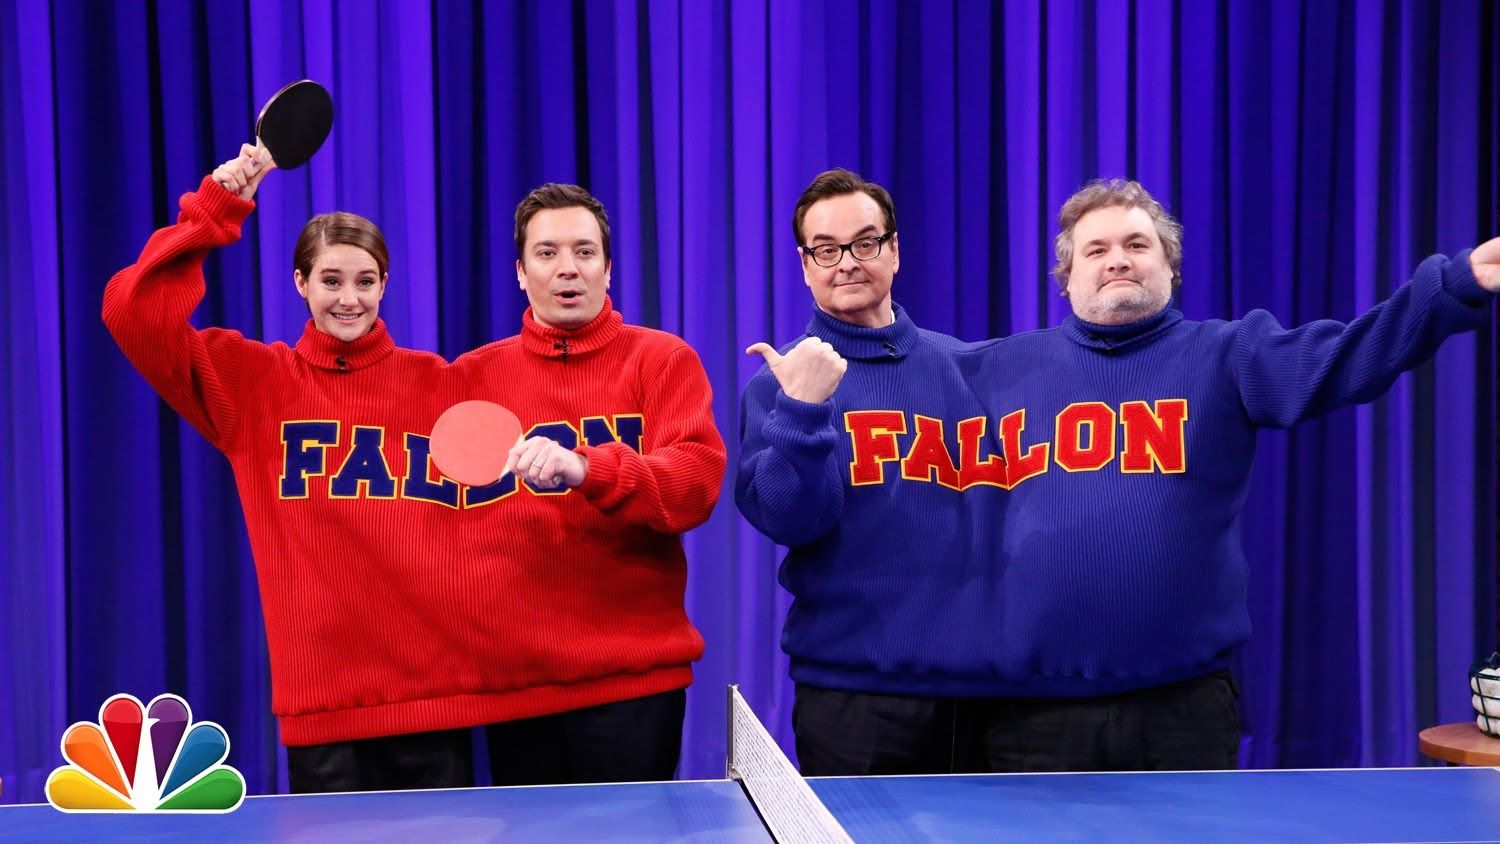 Double Turtleneck Ping Pong With Shailene Woodley And Artie Lange Billiardfactory Com Best Of Jimmy Fallon Jimmy Fallon Jimmy Fallon Videos